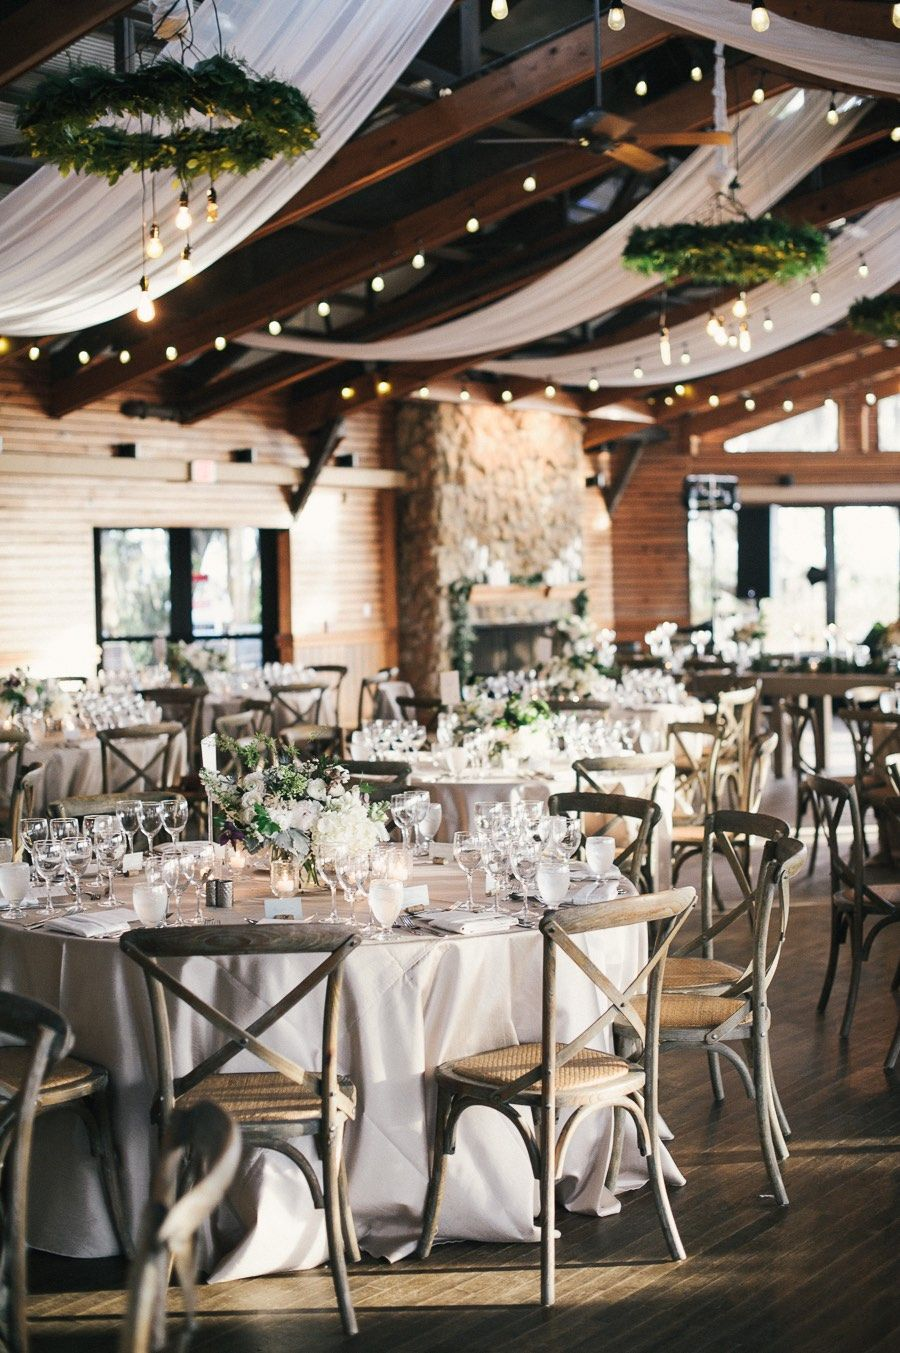 Beautifully Organic Florida Wedding from Still55 Photography - MODwedding #weddingreception